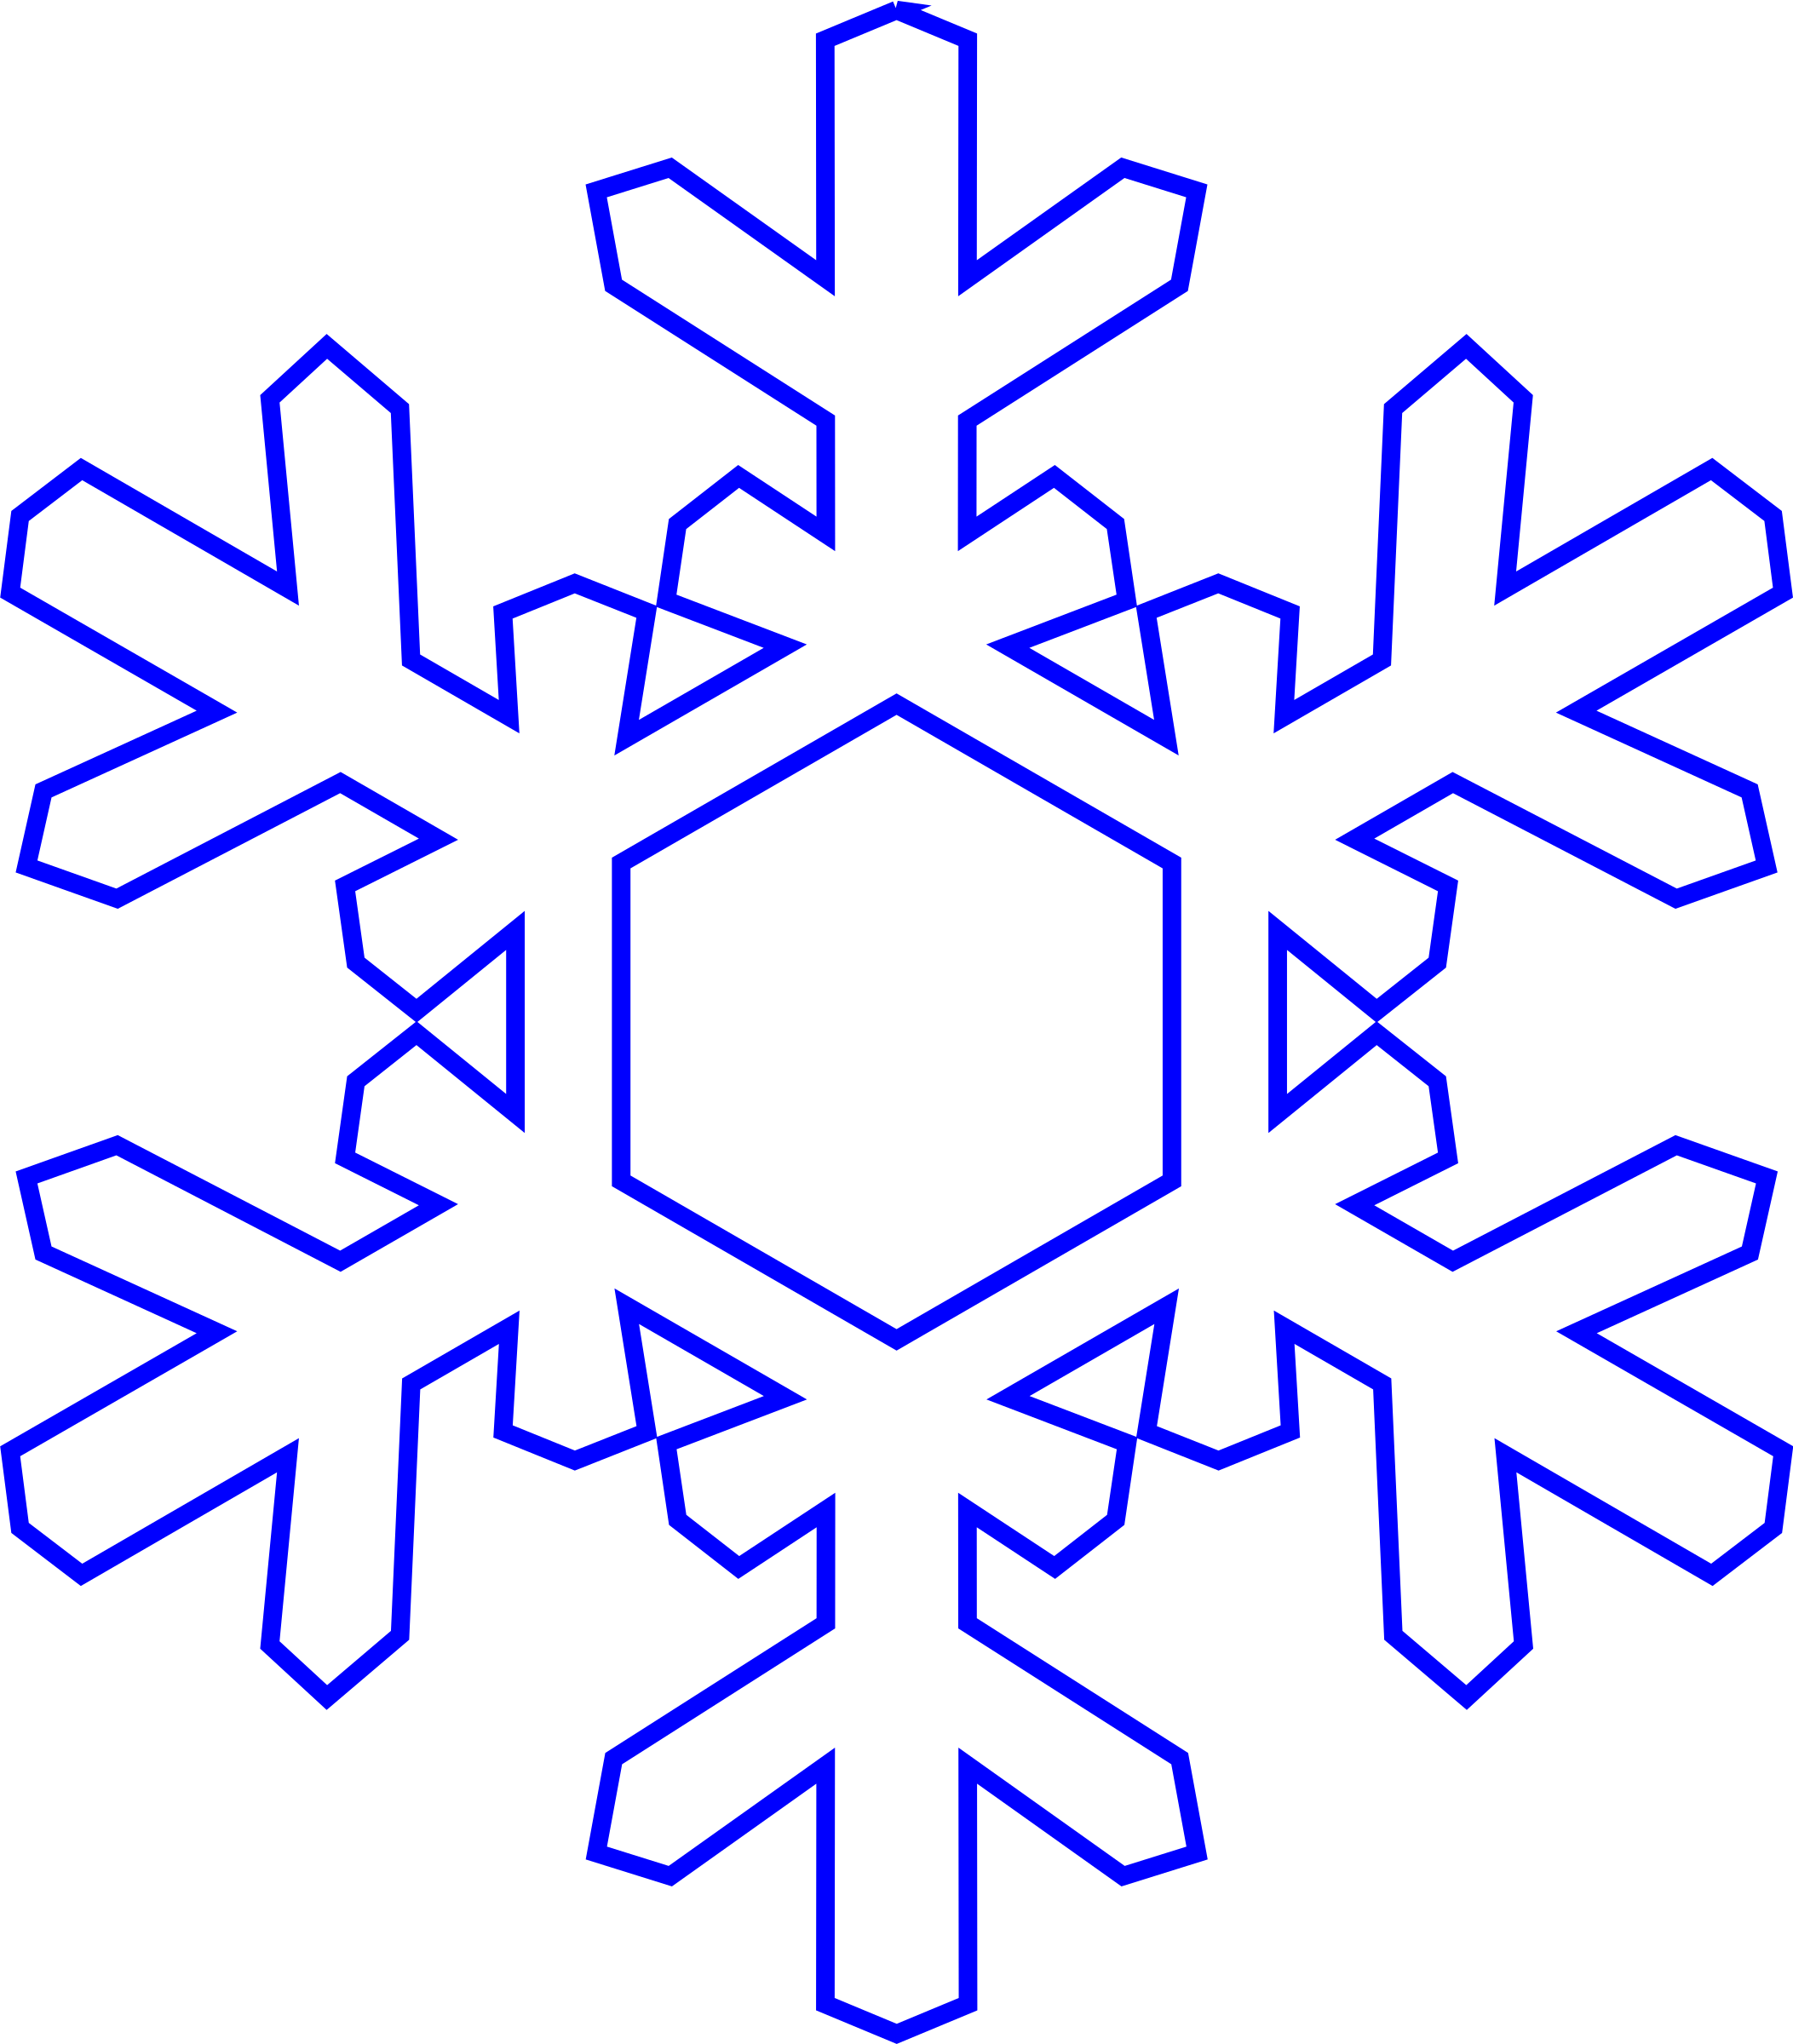 picture download Real cliparts jokingart com. Snowflake clipart borders